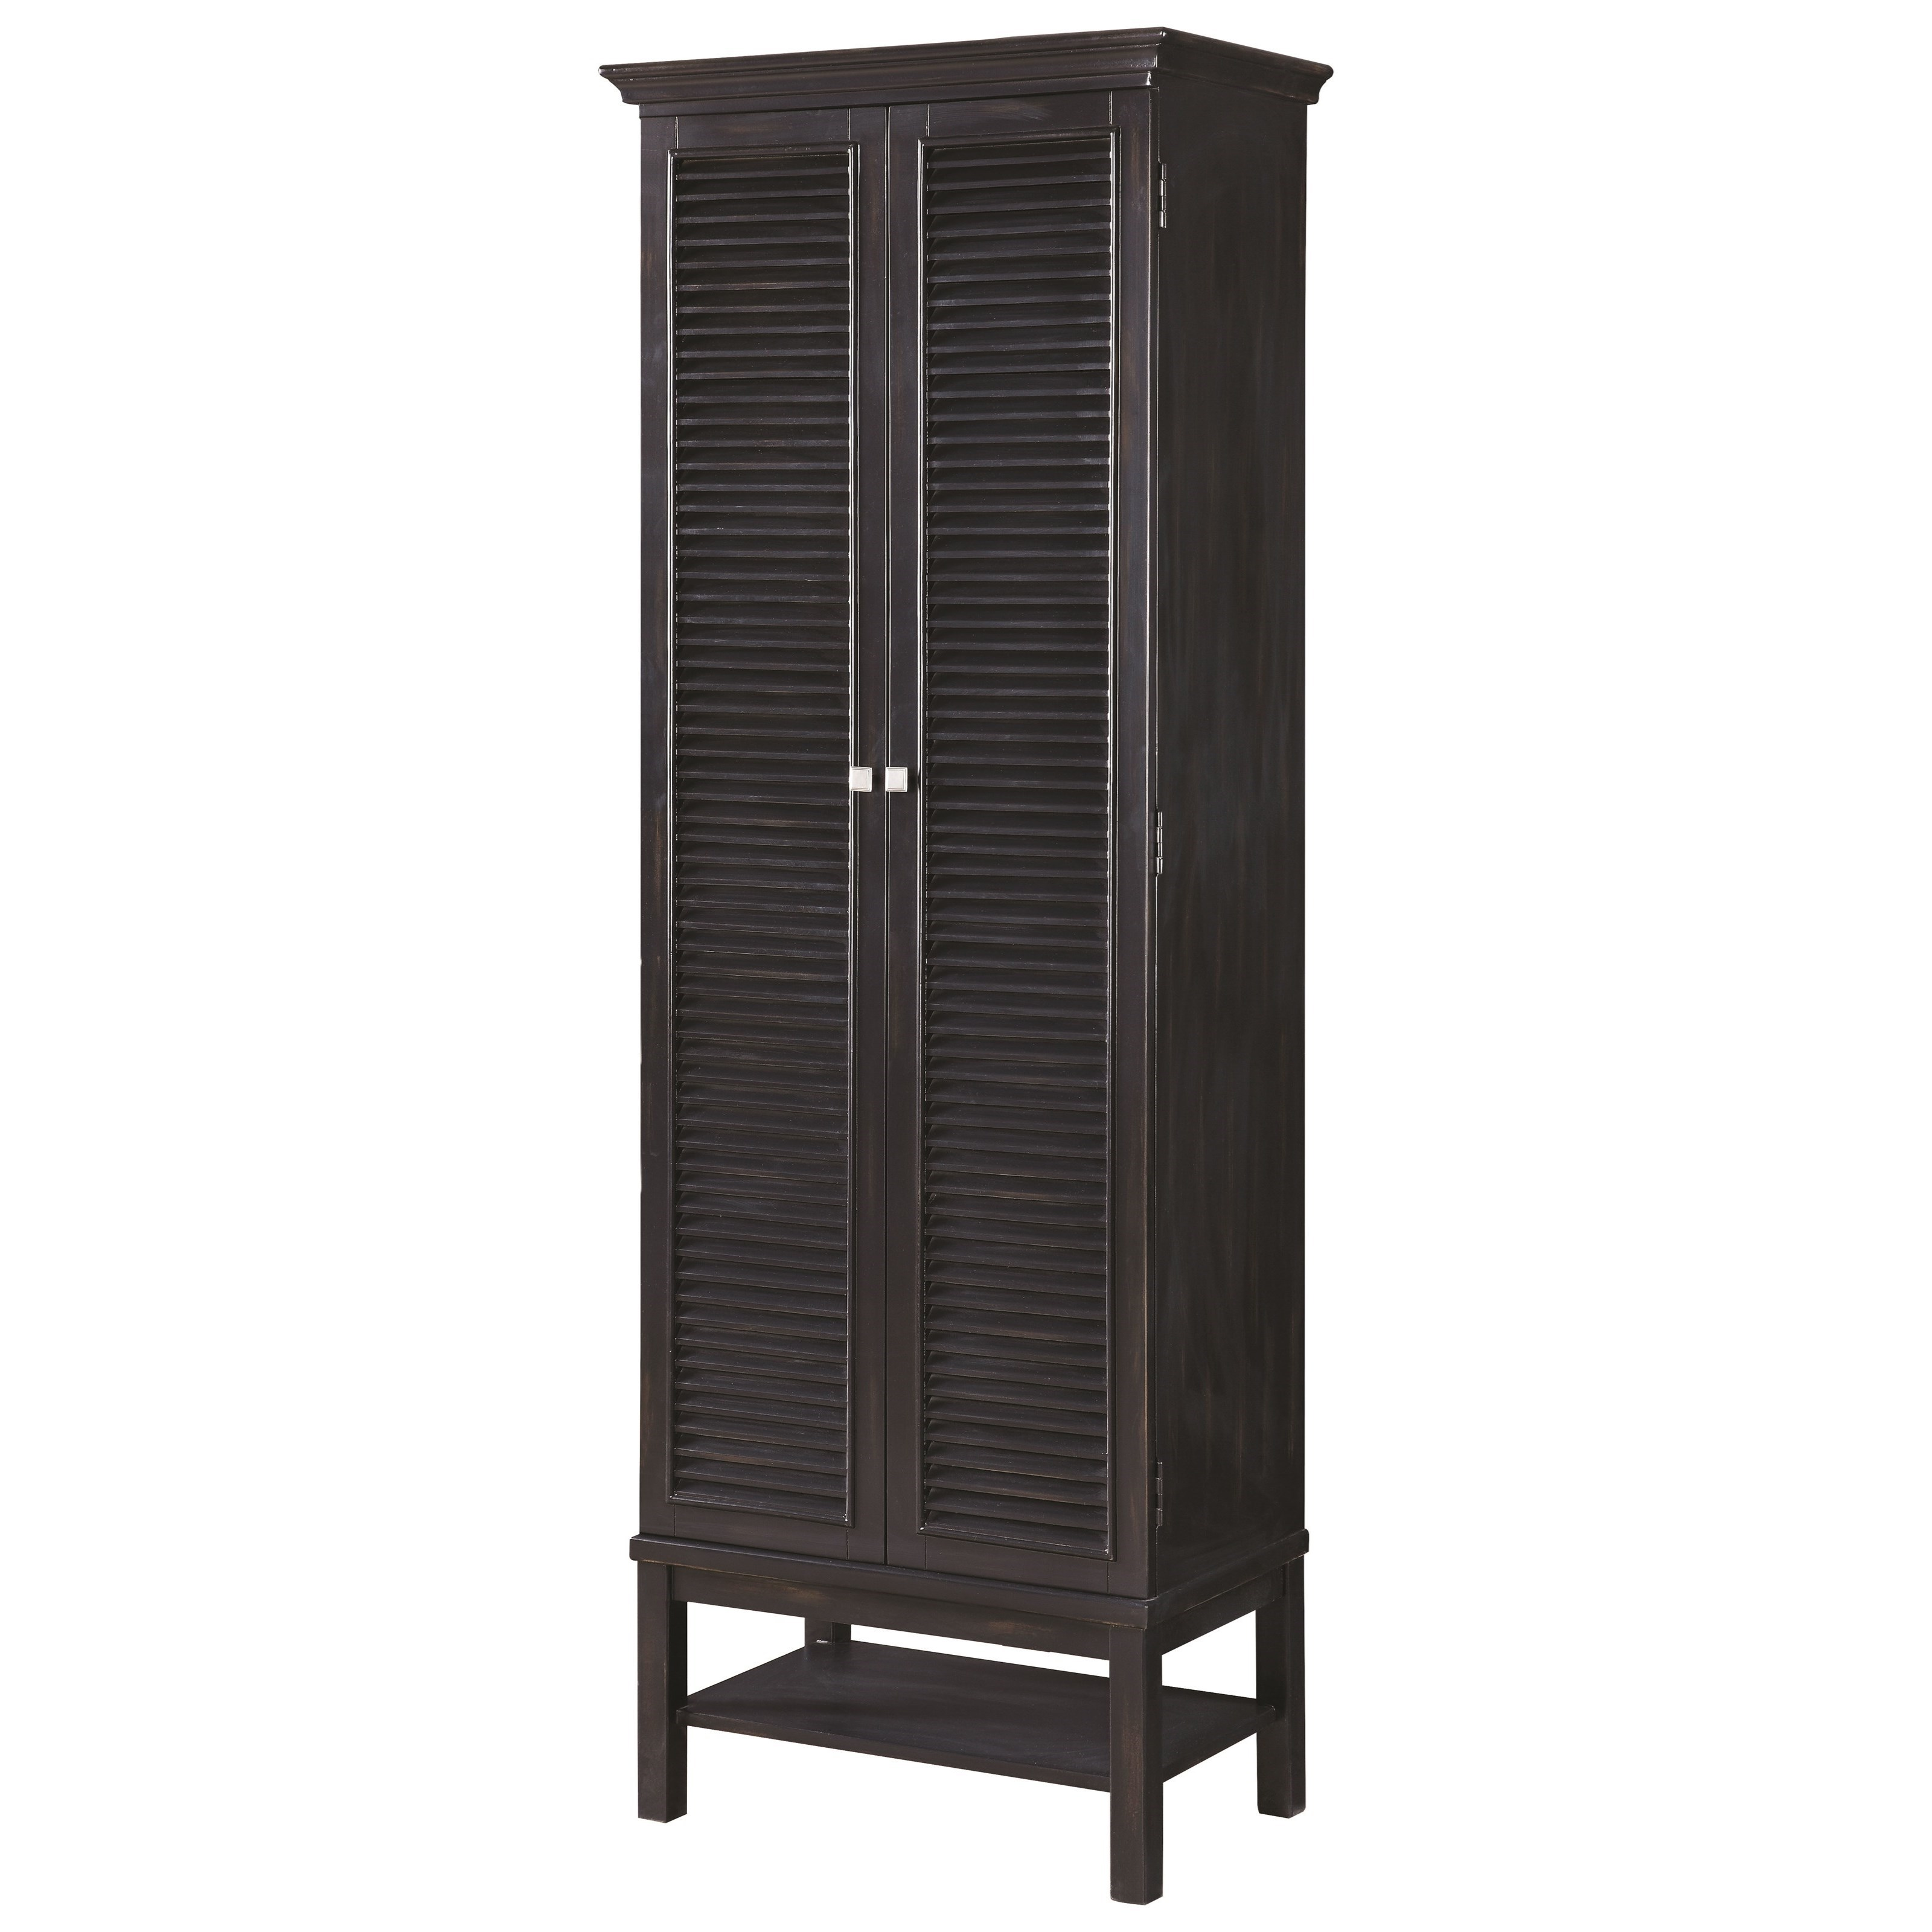 Tall Wine Cabinet With Shutter Doors By Scott Living Wolf And